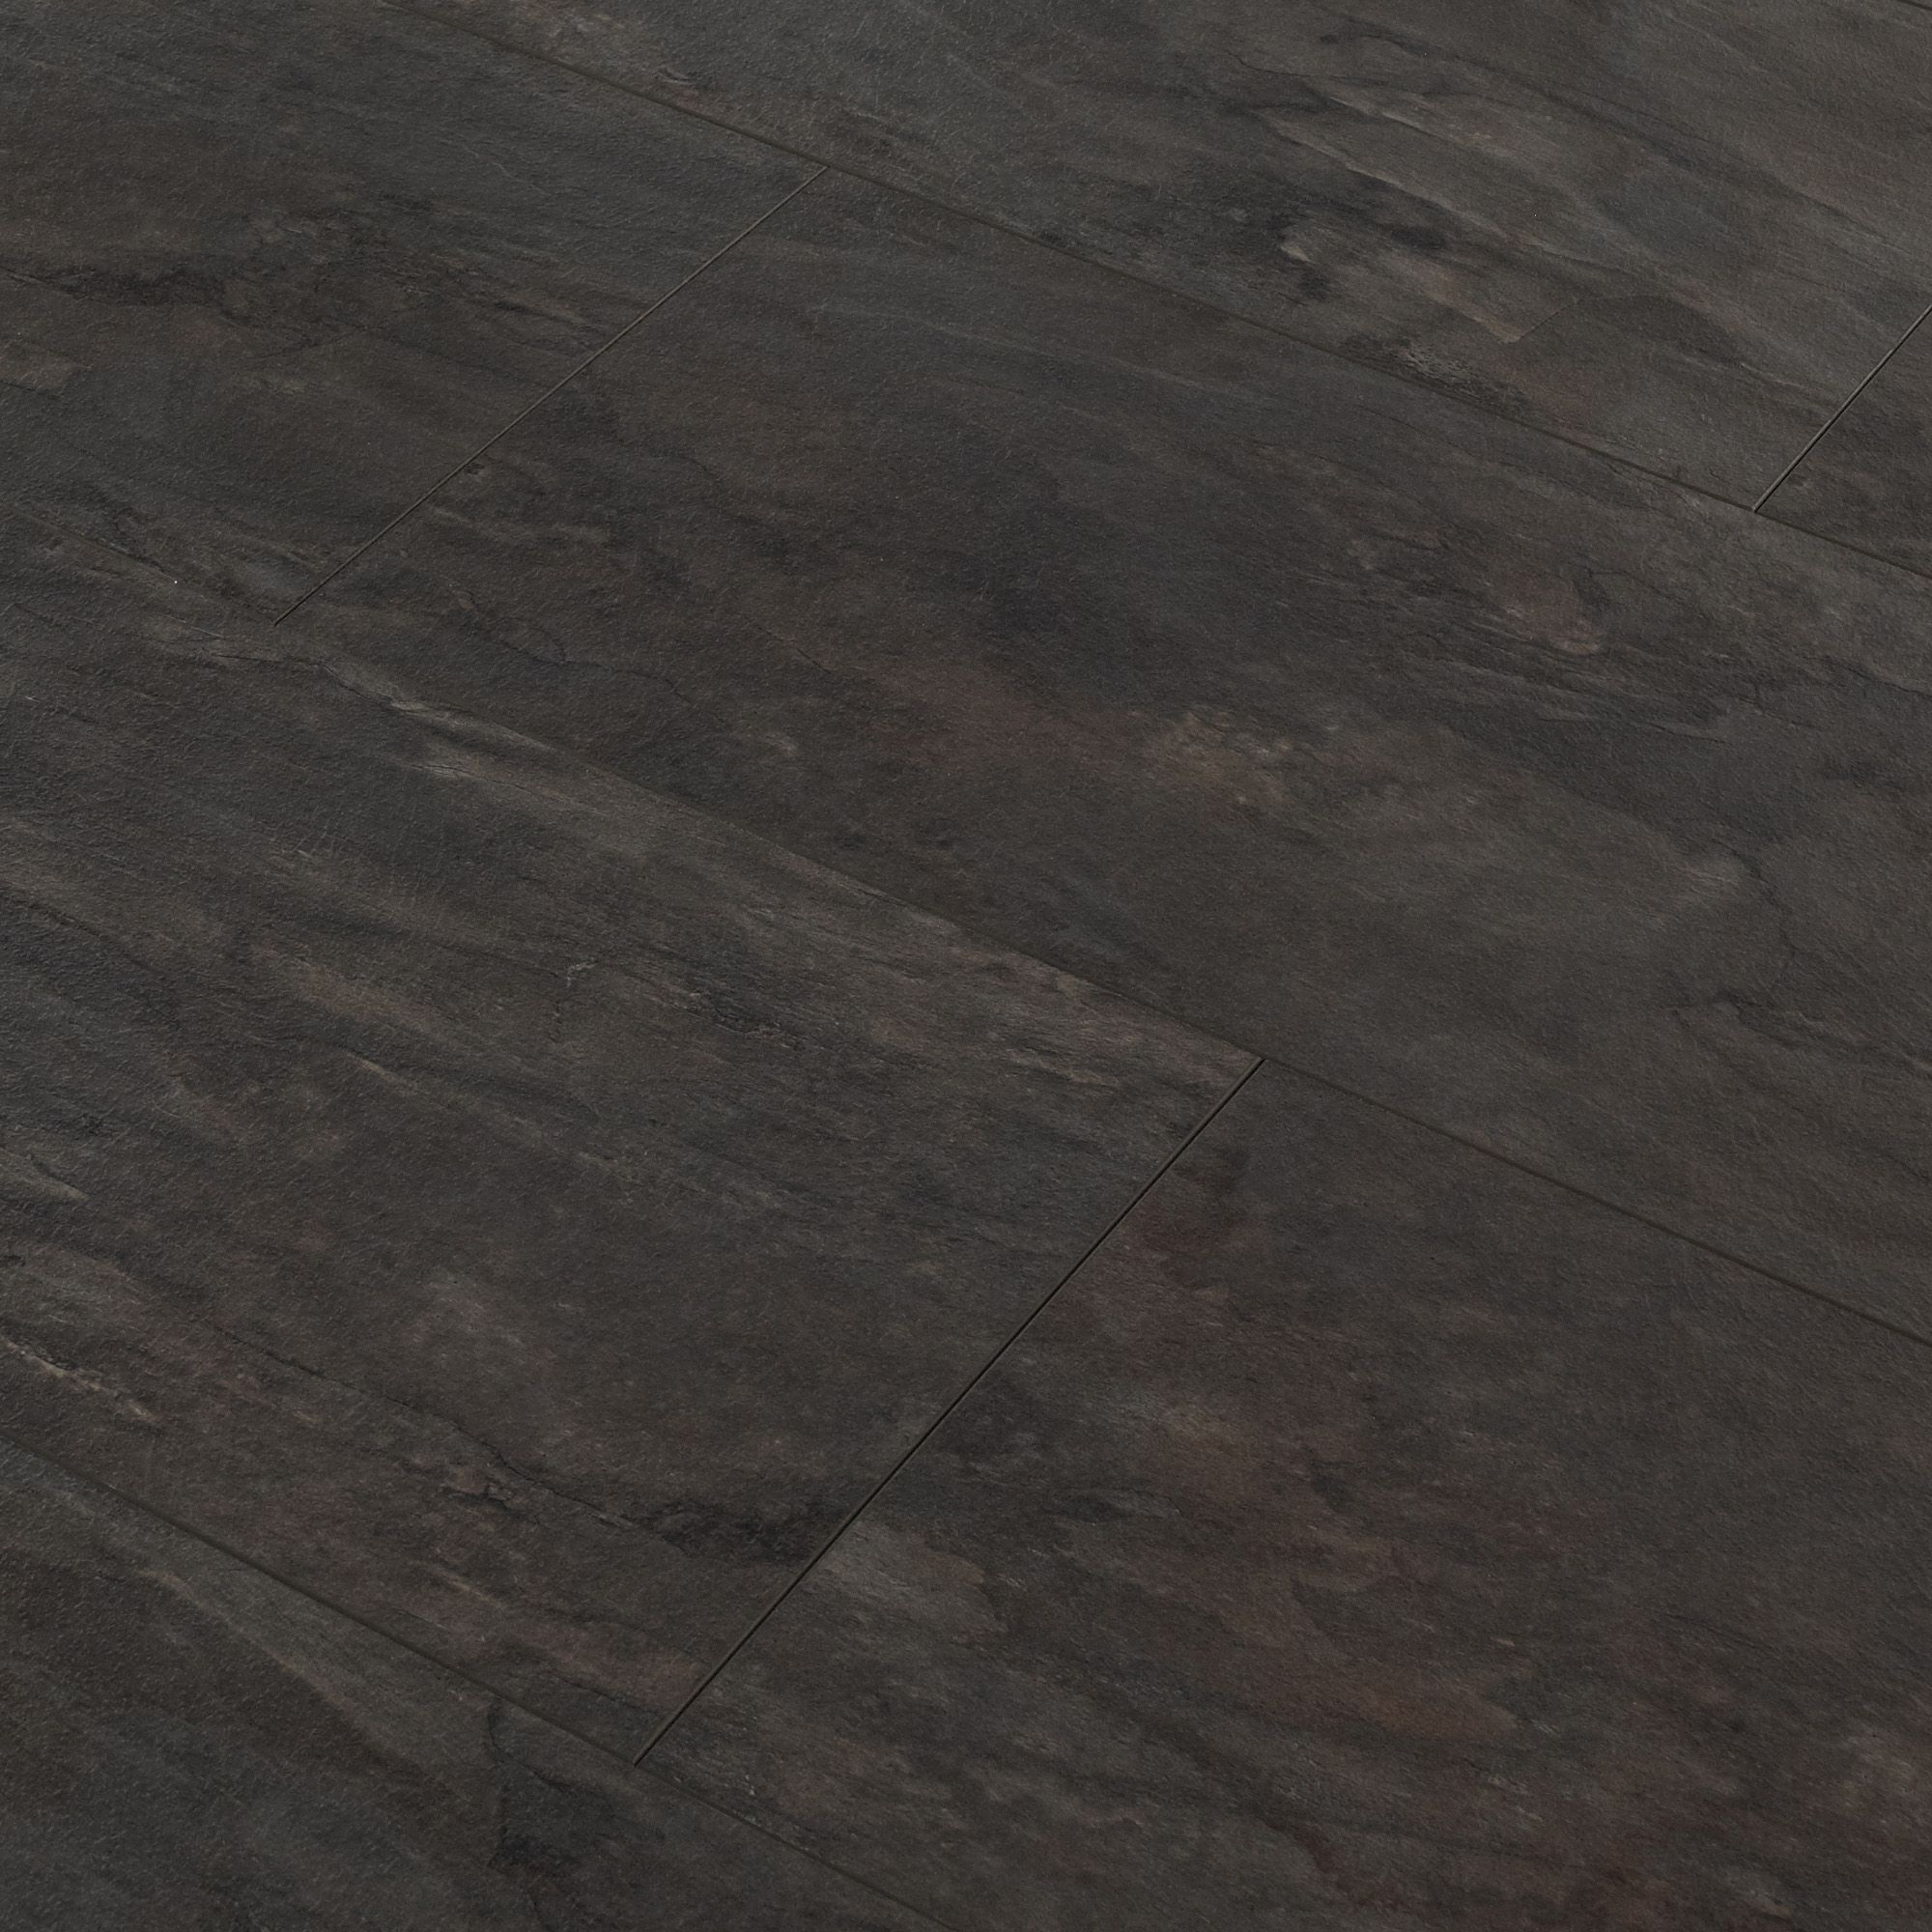 Intermezzo Slate Effect Laminate Flooring Sample Departments Diy At B Q